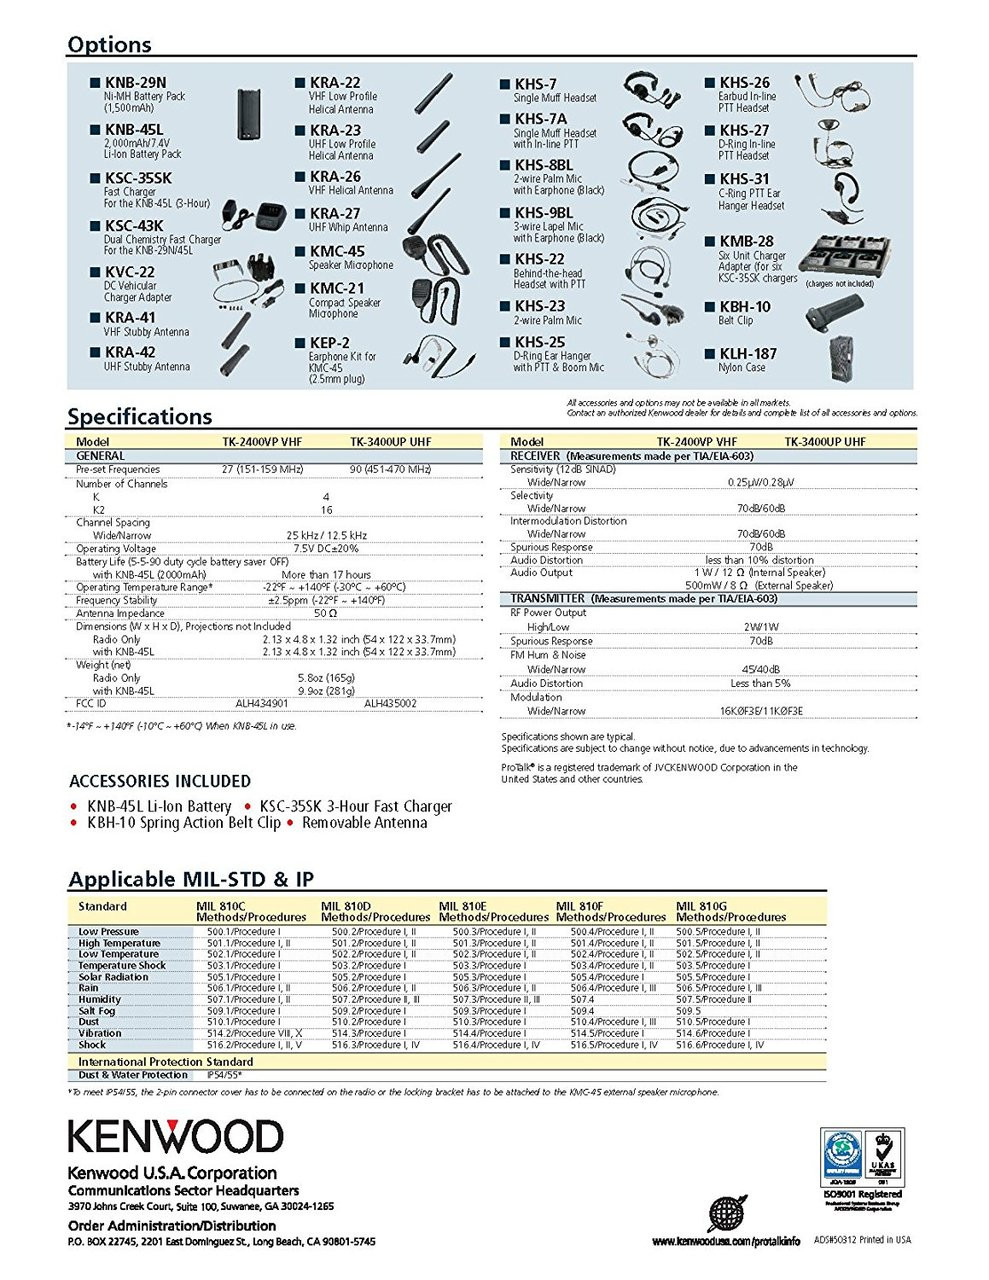 Kenwood ProTalk TK3400UP 2 Watt 4 Channel UHF Two Way Radio Spec Sheet Page 2 of 2